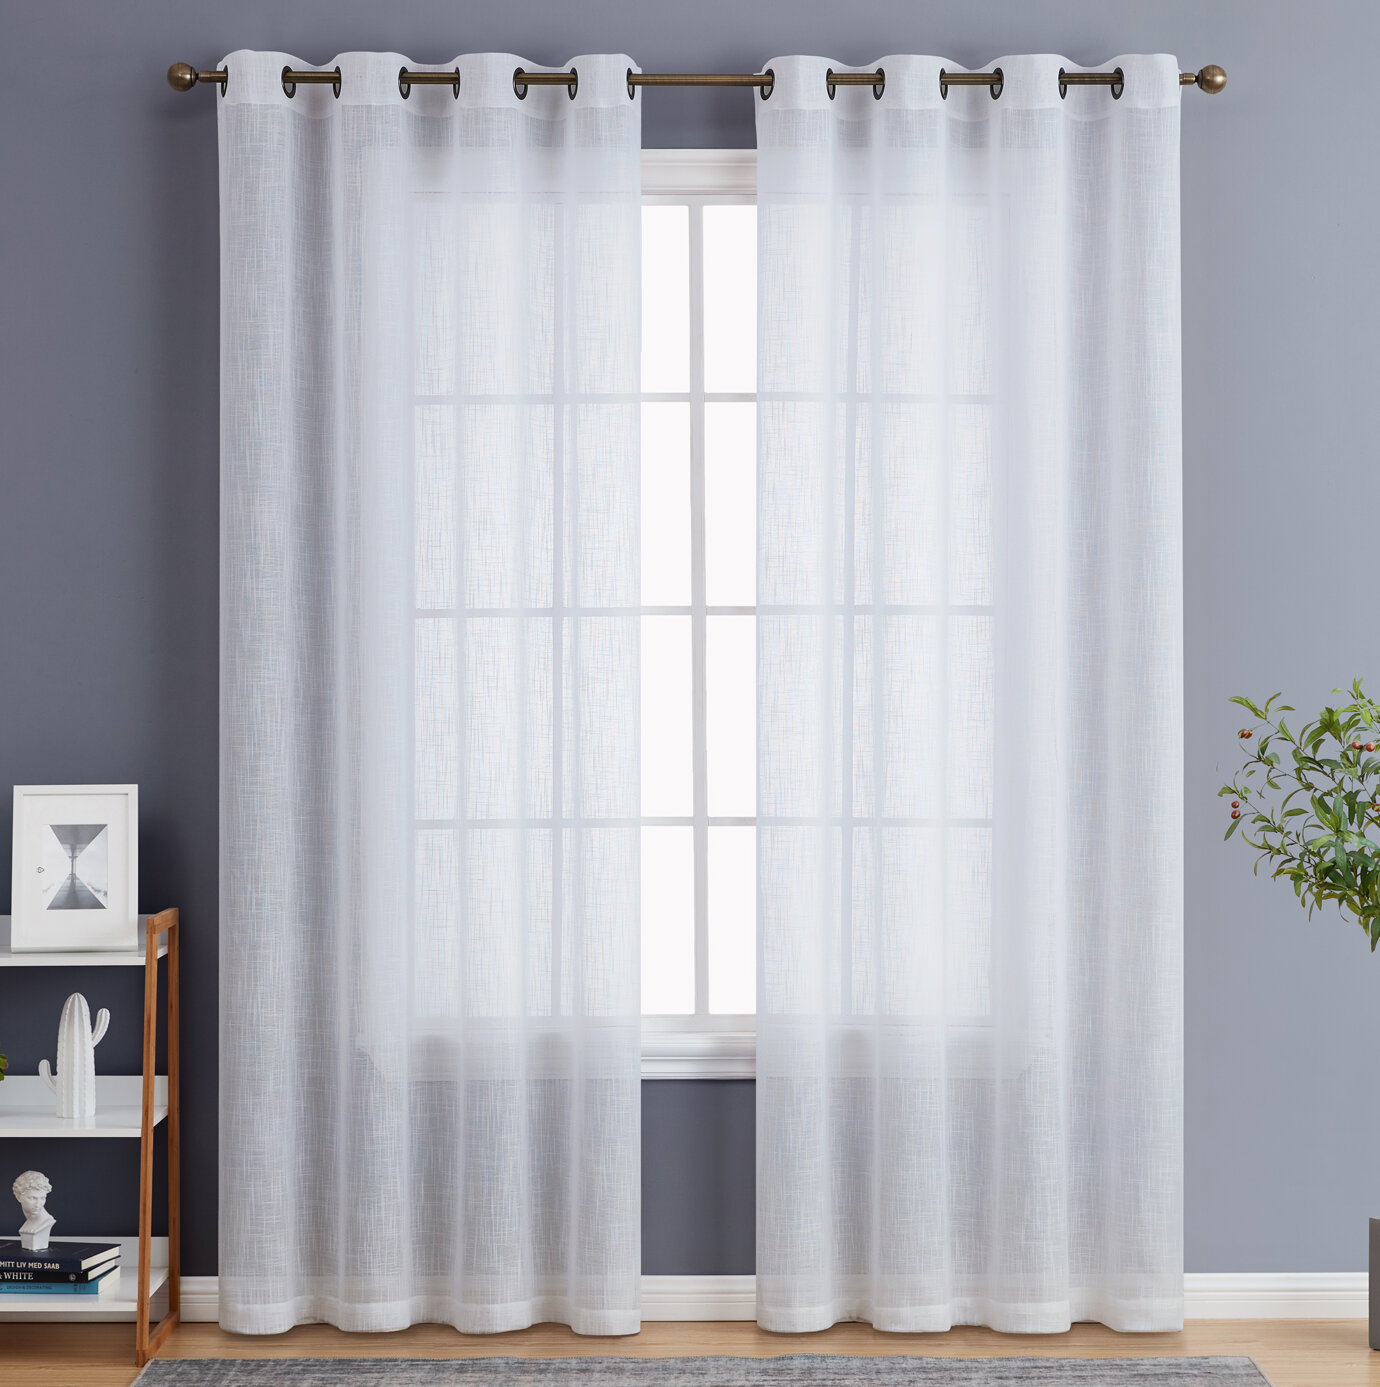 Topfinel Printed Irregular Stripes Voile Curtains Sheer Window Treatment Eyelet Panels Drapes Curtains For Living Room Bedroom 54 Width x 63 Drop Teal Set of Two Pieces